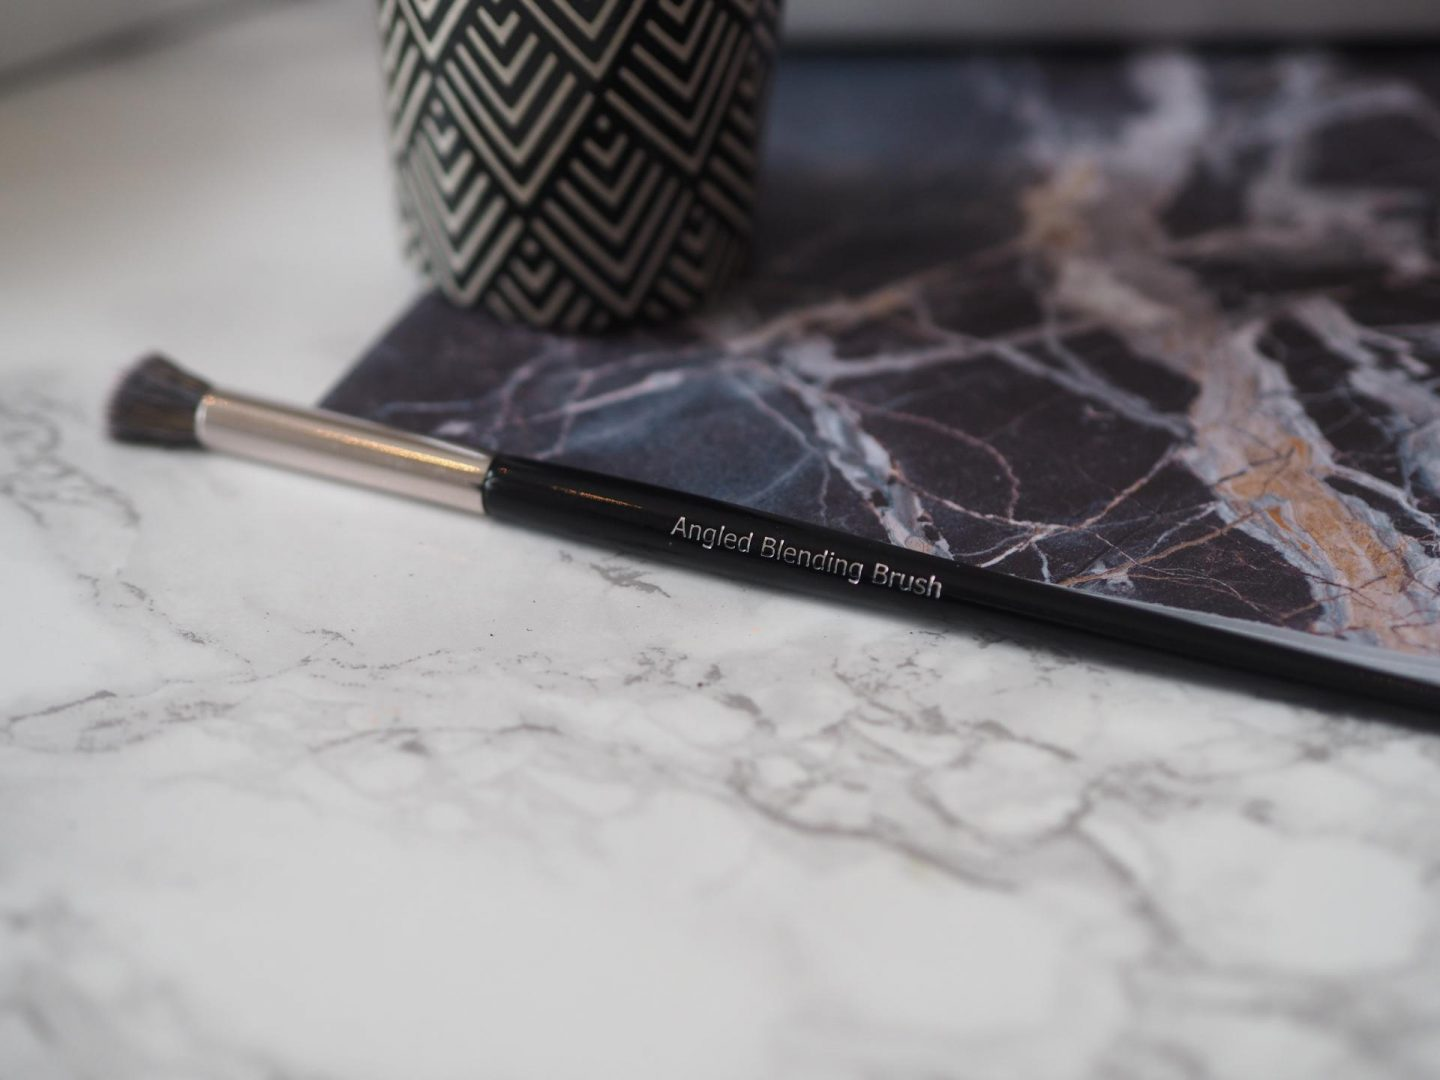 Lookfantastic #LFSparkle Box - Product: Angled Blending Brush